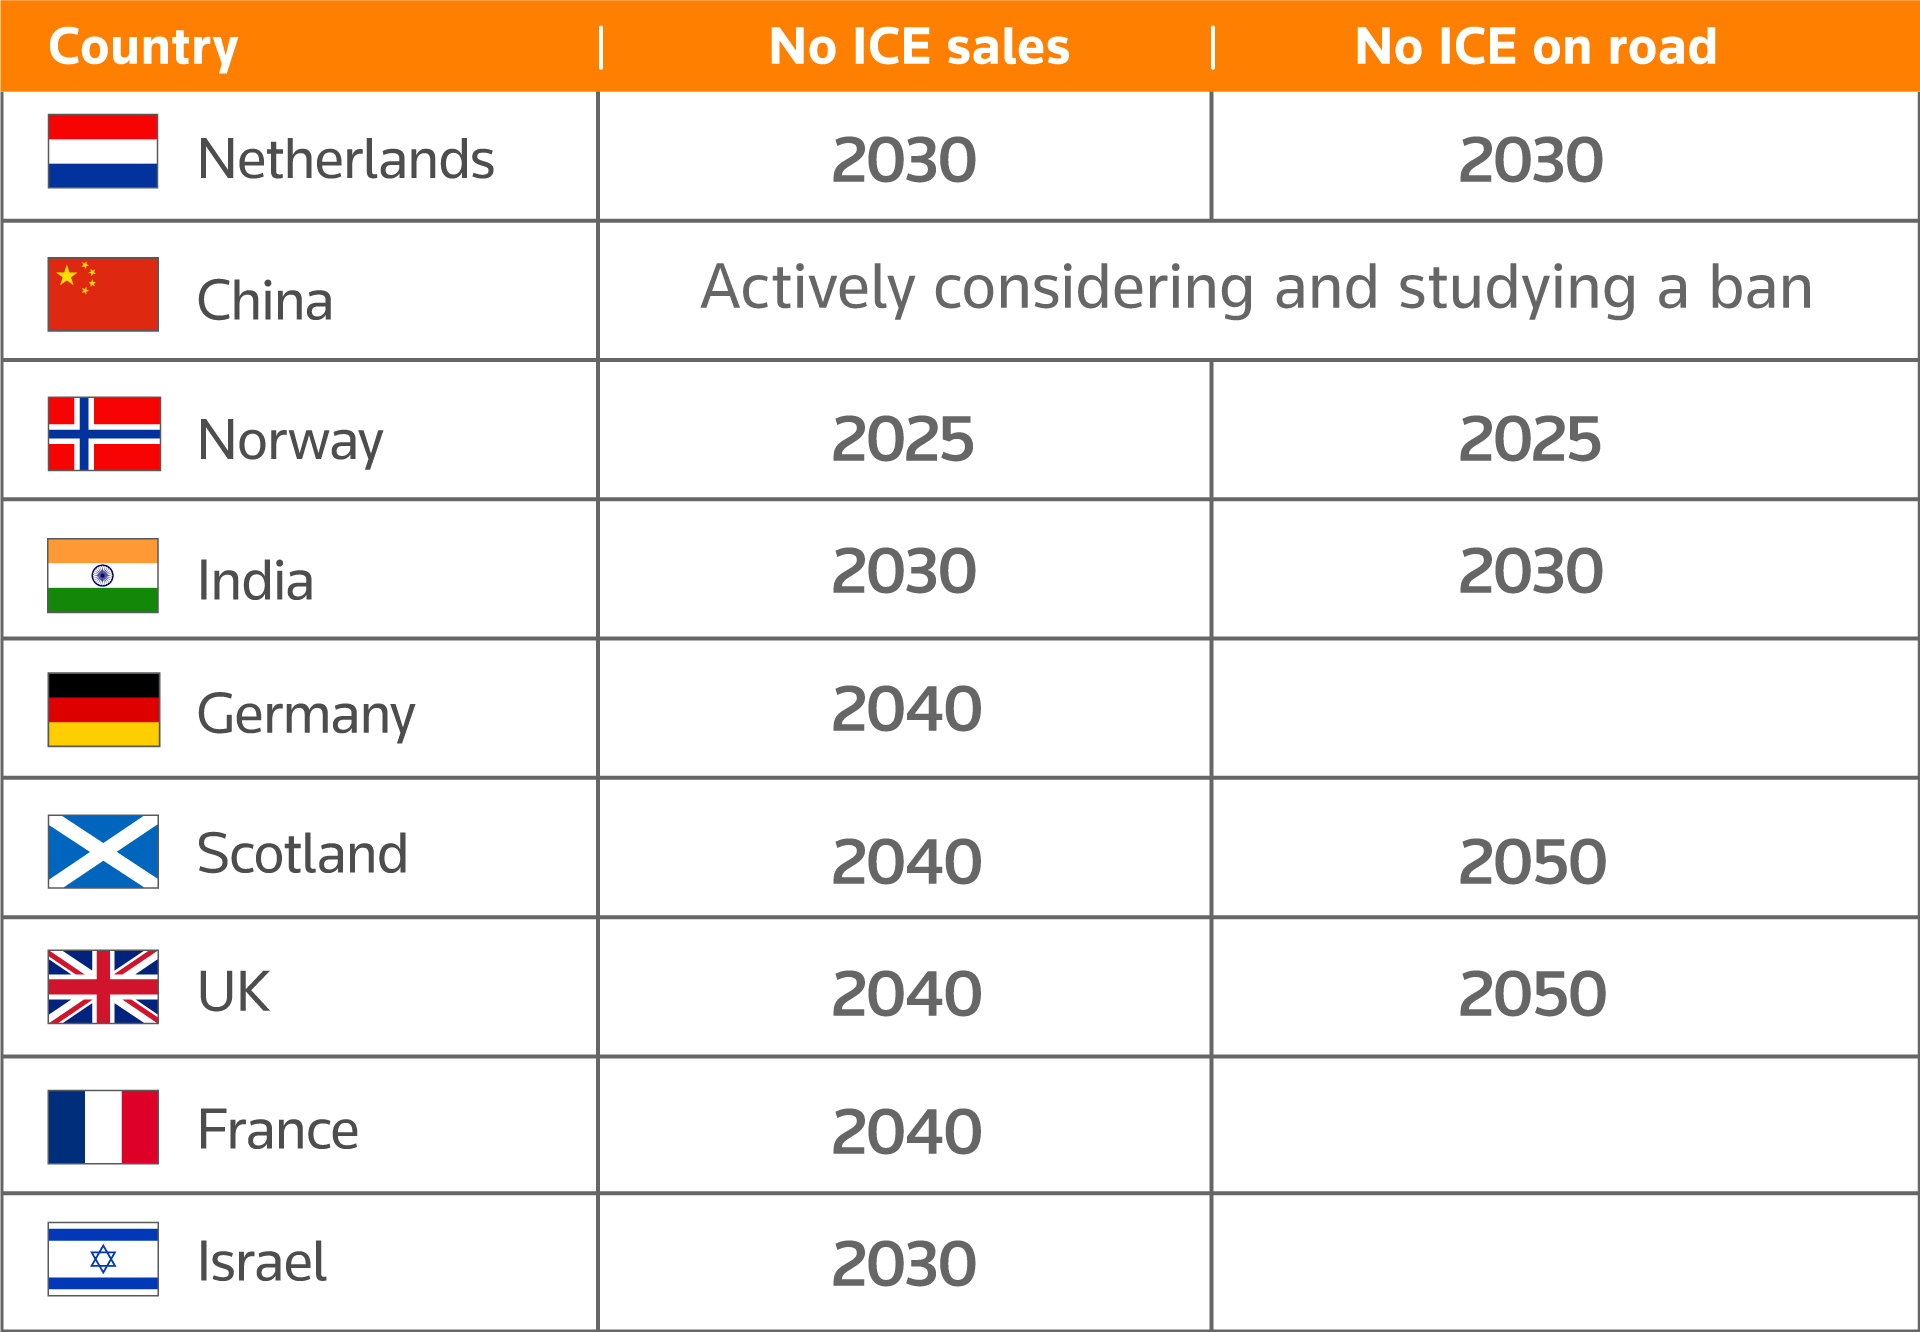 Internal combustion engine (ICE) sales ban proposals around the world